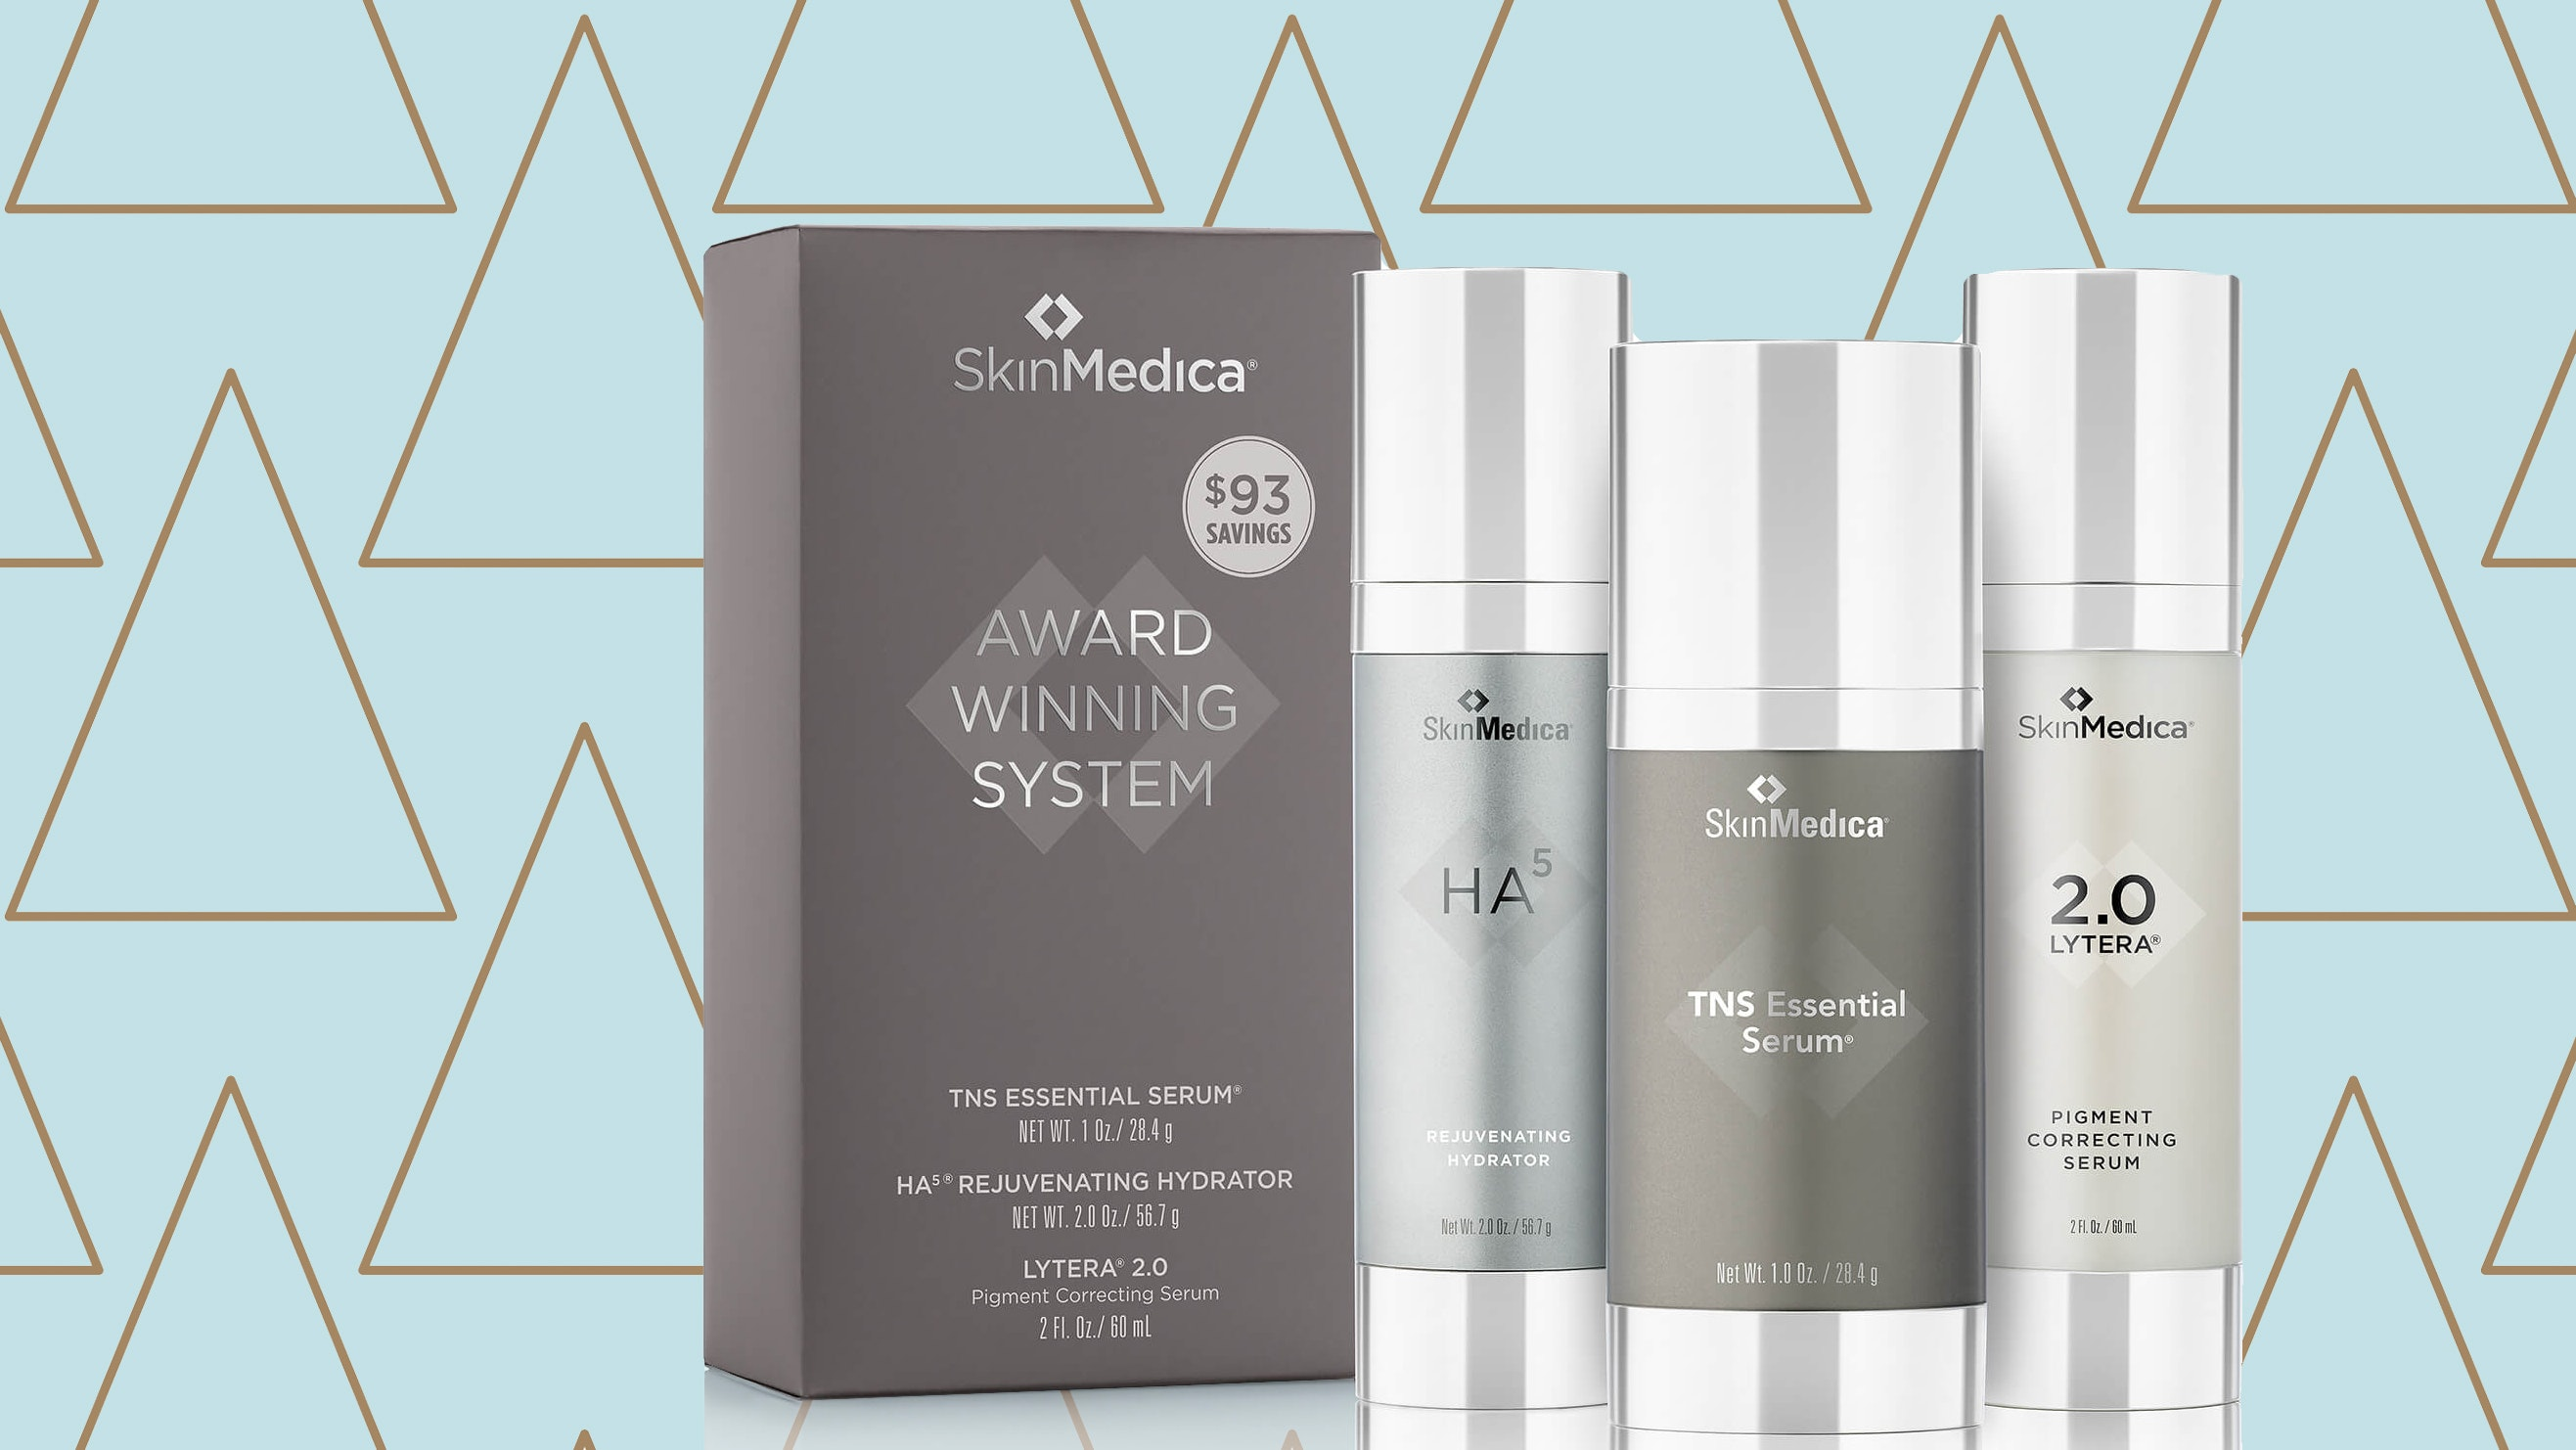 Struggling to Find the Perfect Holiday Gift? These SkinMedica Products Are Bound to Please